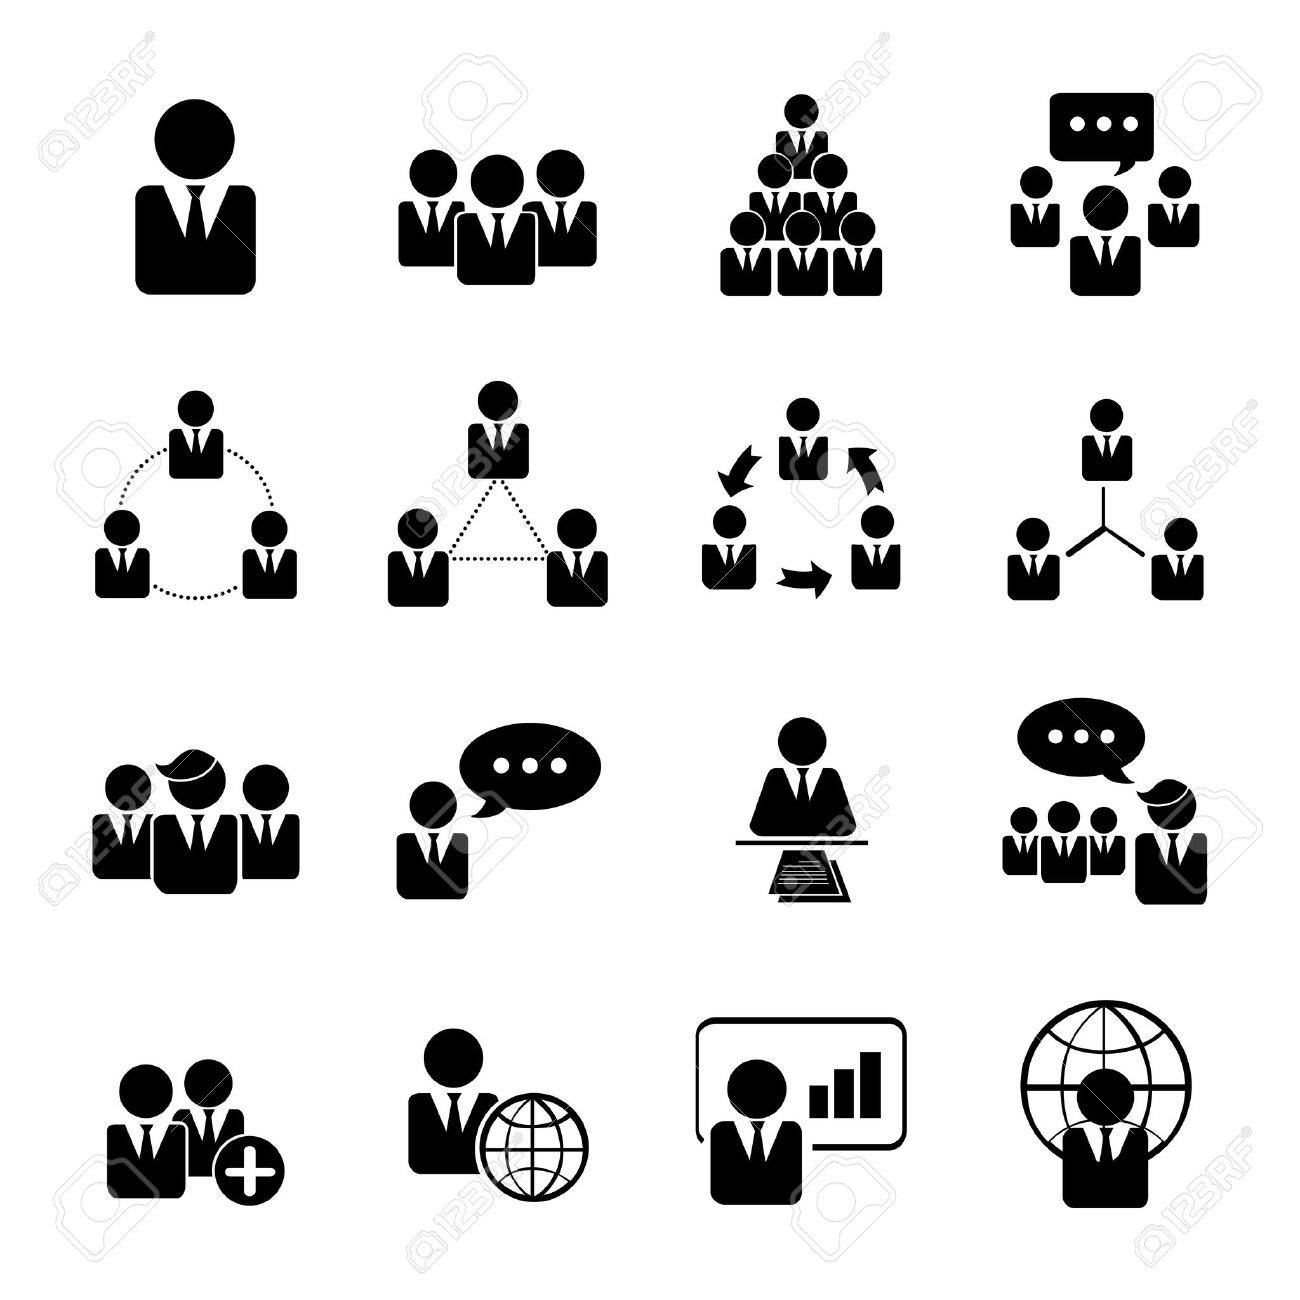 business, management and human resource icons set illustration eps 10 - 40391810